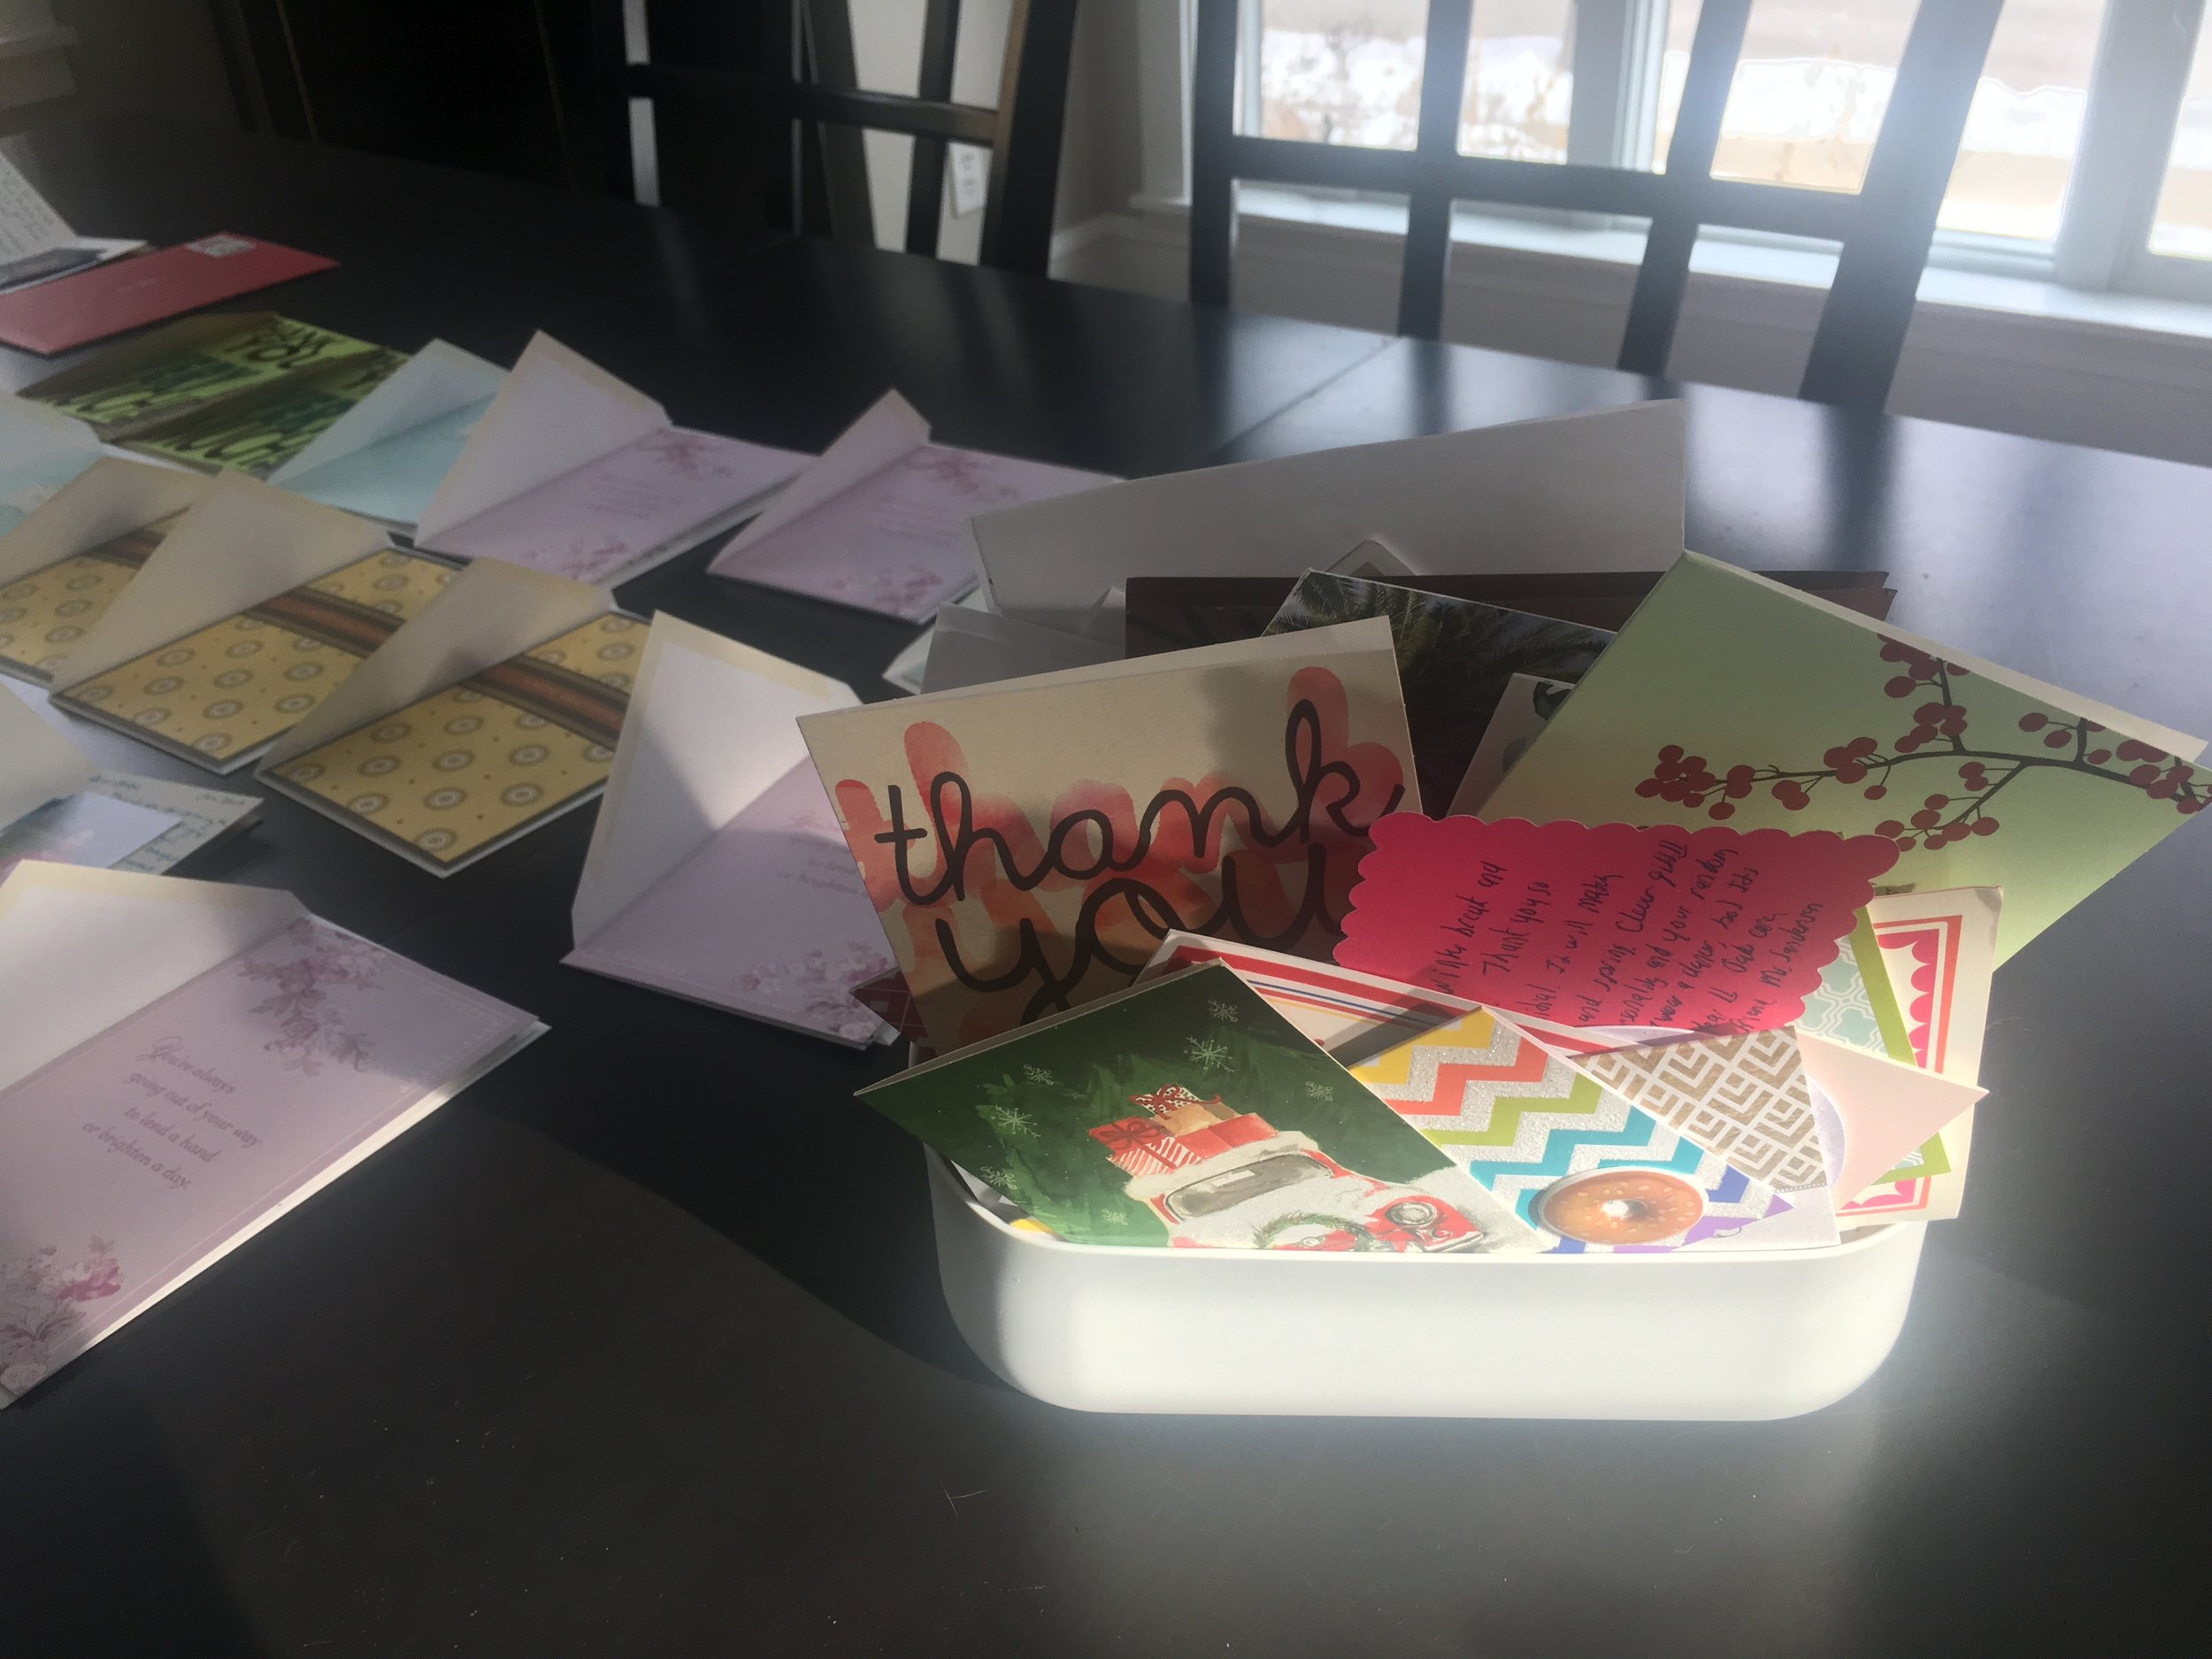 This little bin doesn't look like it but it held 107 thank you cards collected this year. Next to the bin are the cards we wrote for the kids birthdays and Christmas gifts getting ready to be signed and mailed last week.